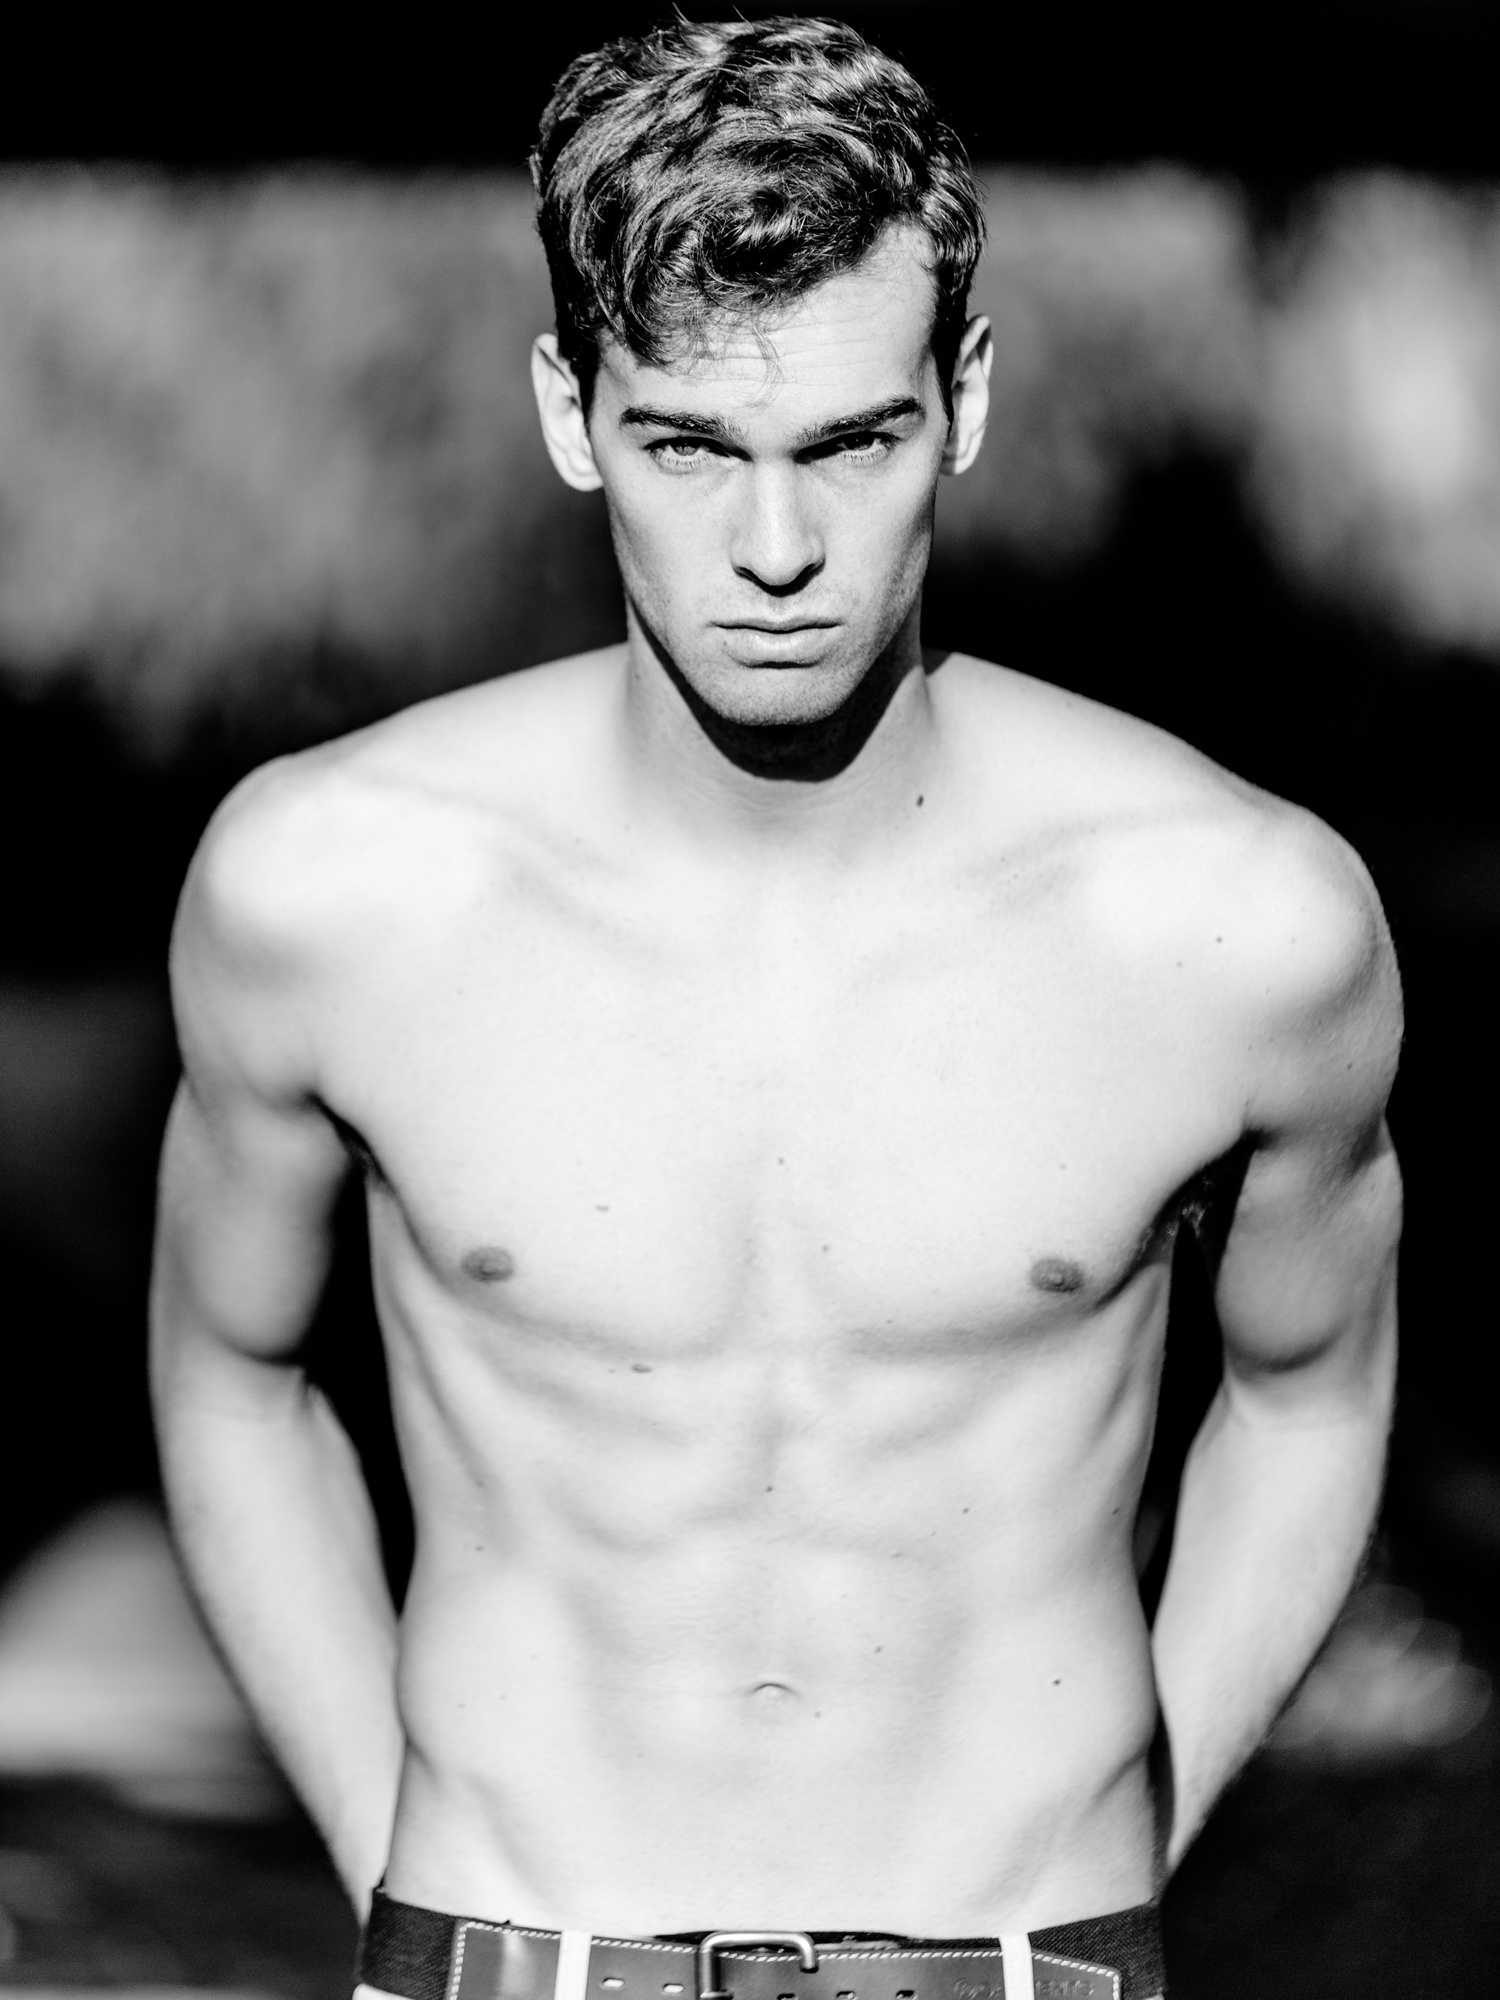 tim gerges male fashion photographer jona schilling model management-6543.jpg